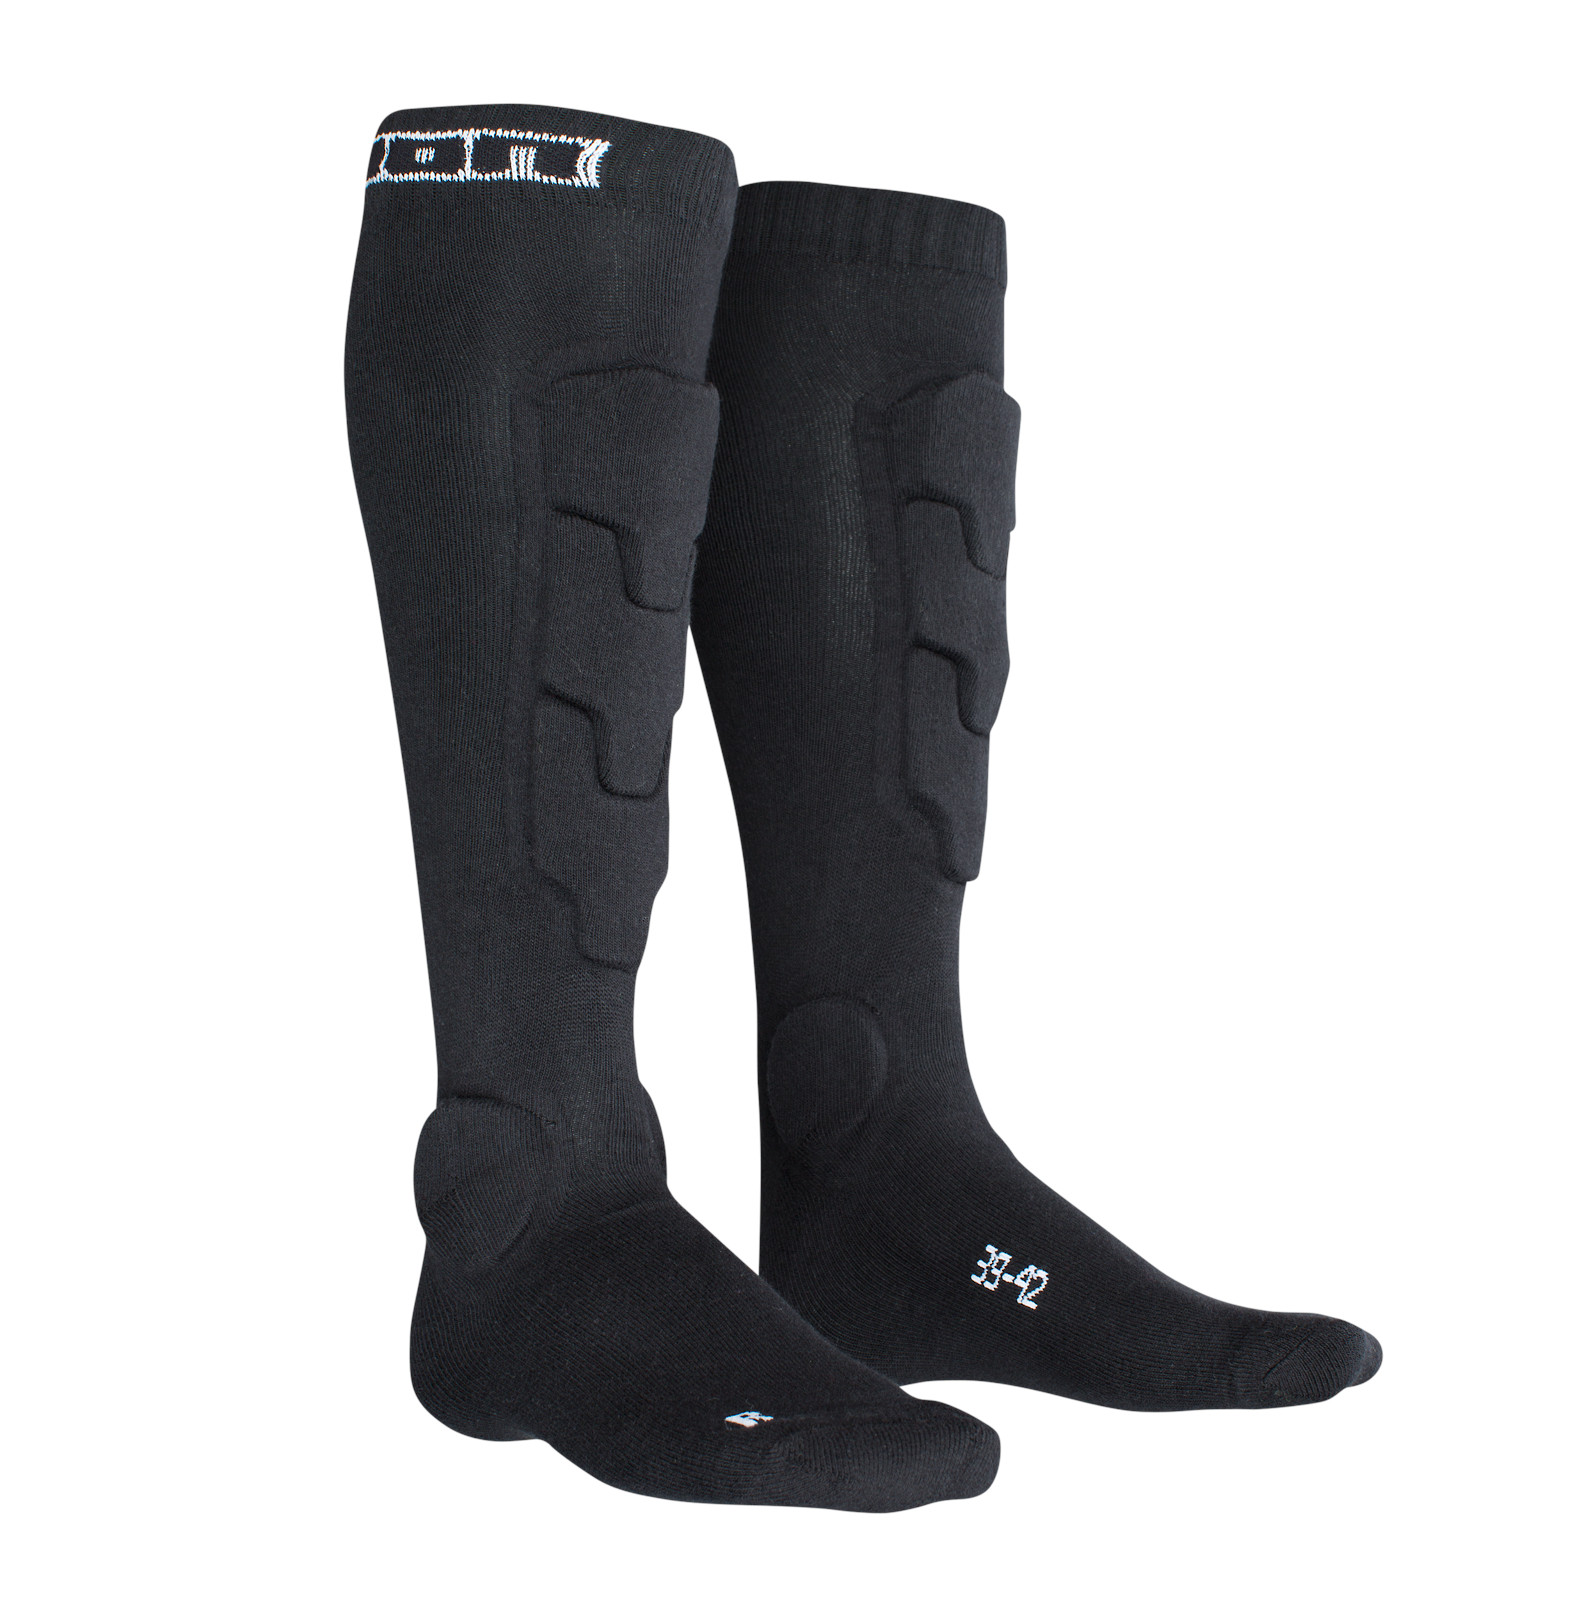 ION BD-Socks 2.0 (black)